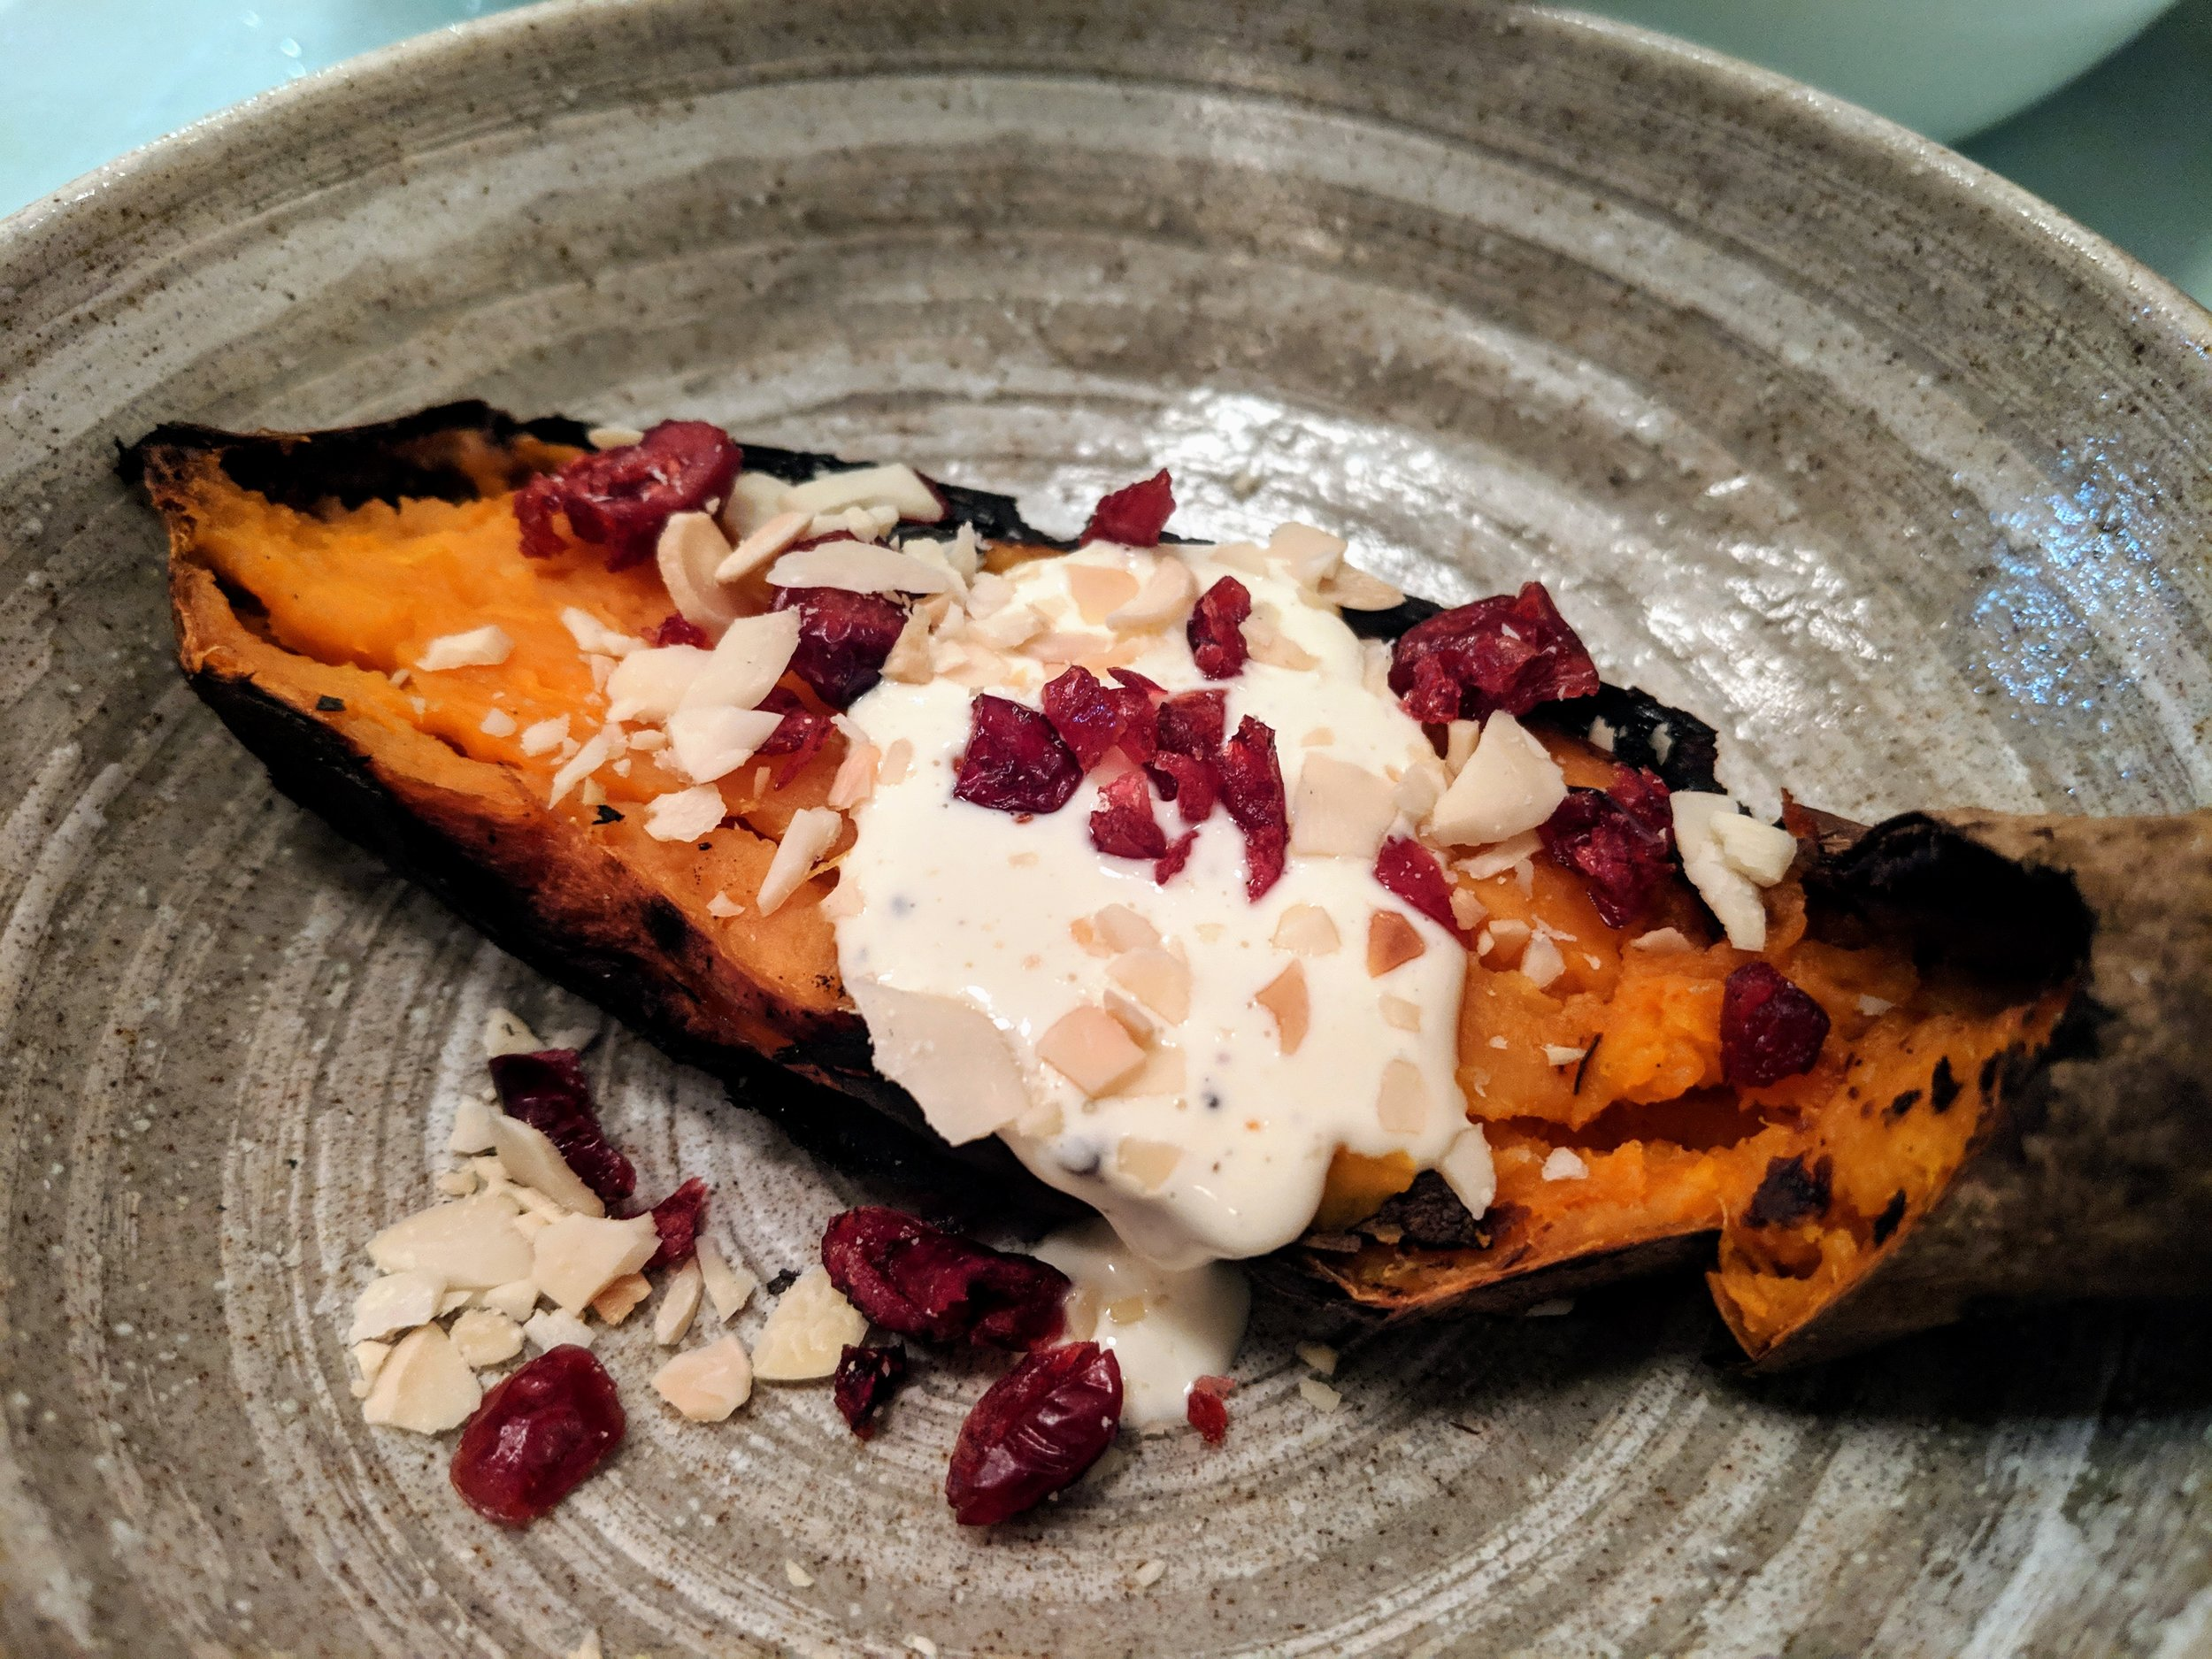 Yaki Imo  (sweet potatoes roasted in embers, yogurt Kewpie, cranberries, toasted almonds)